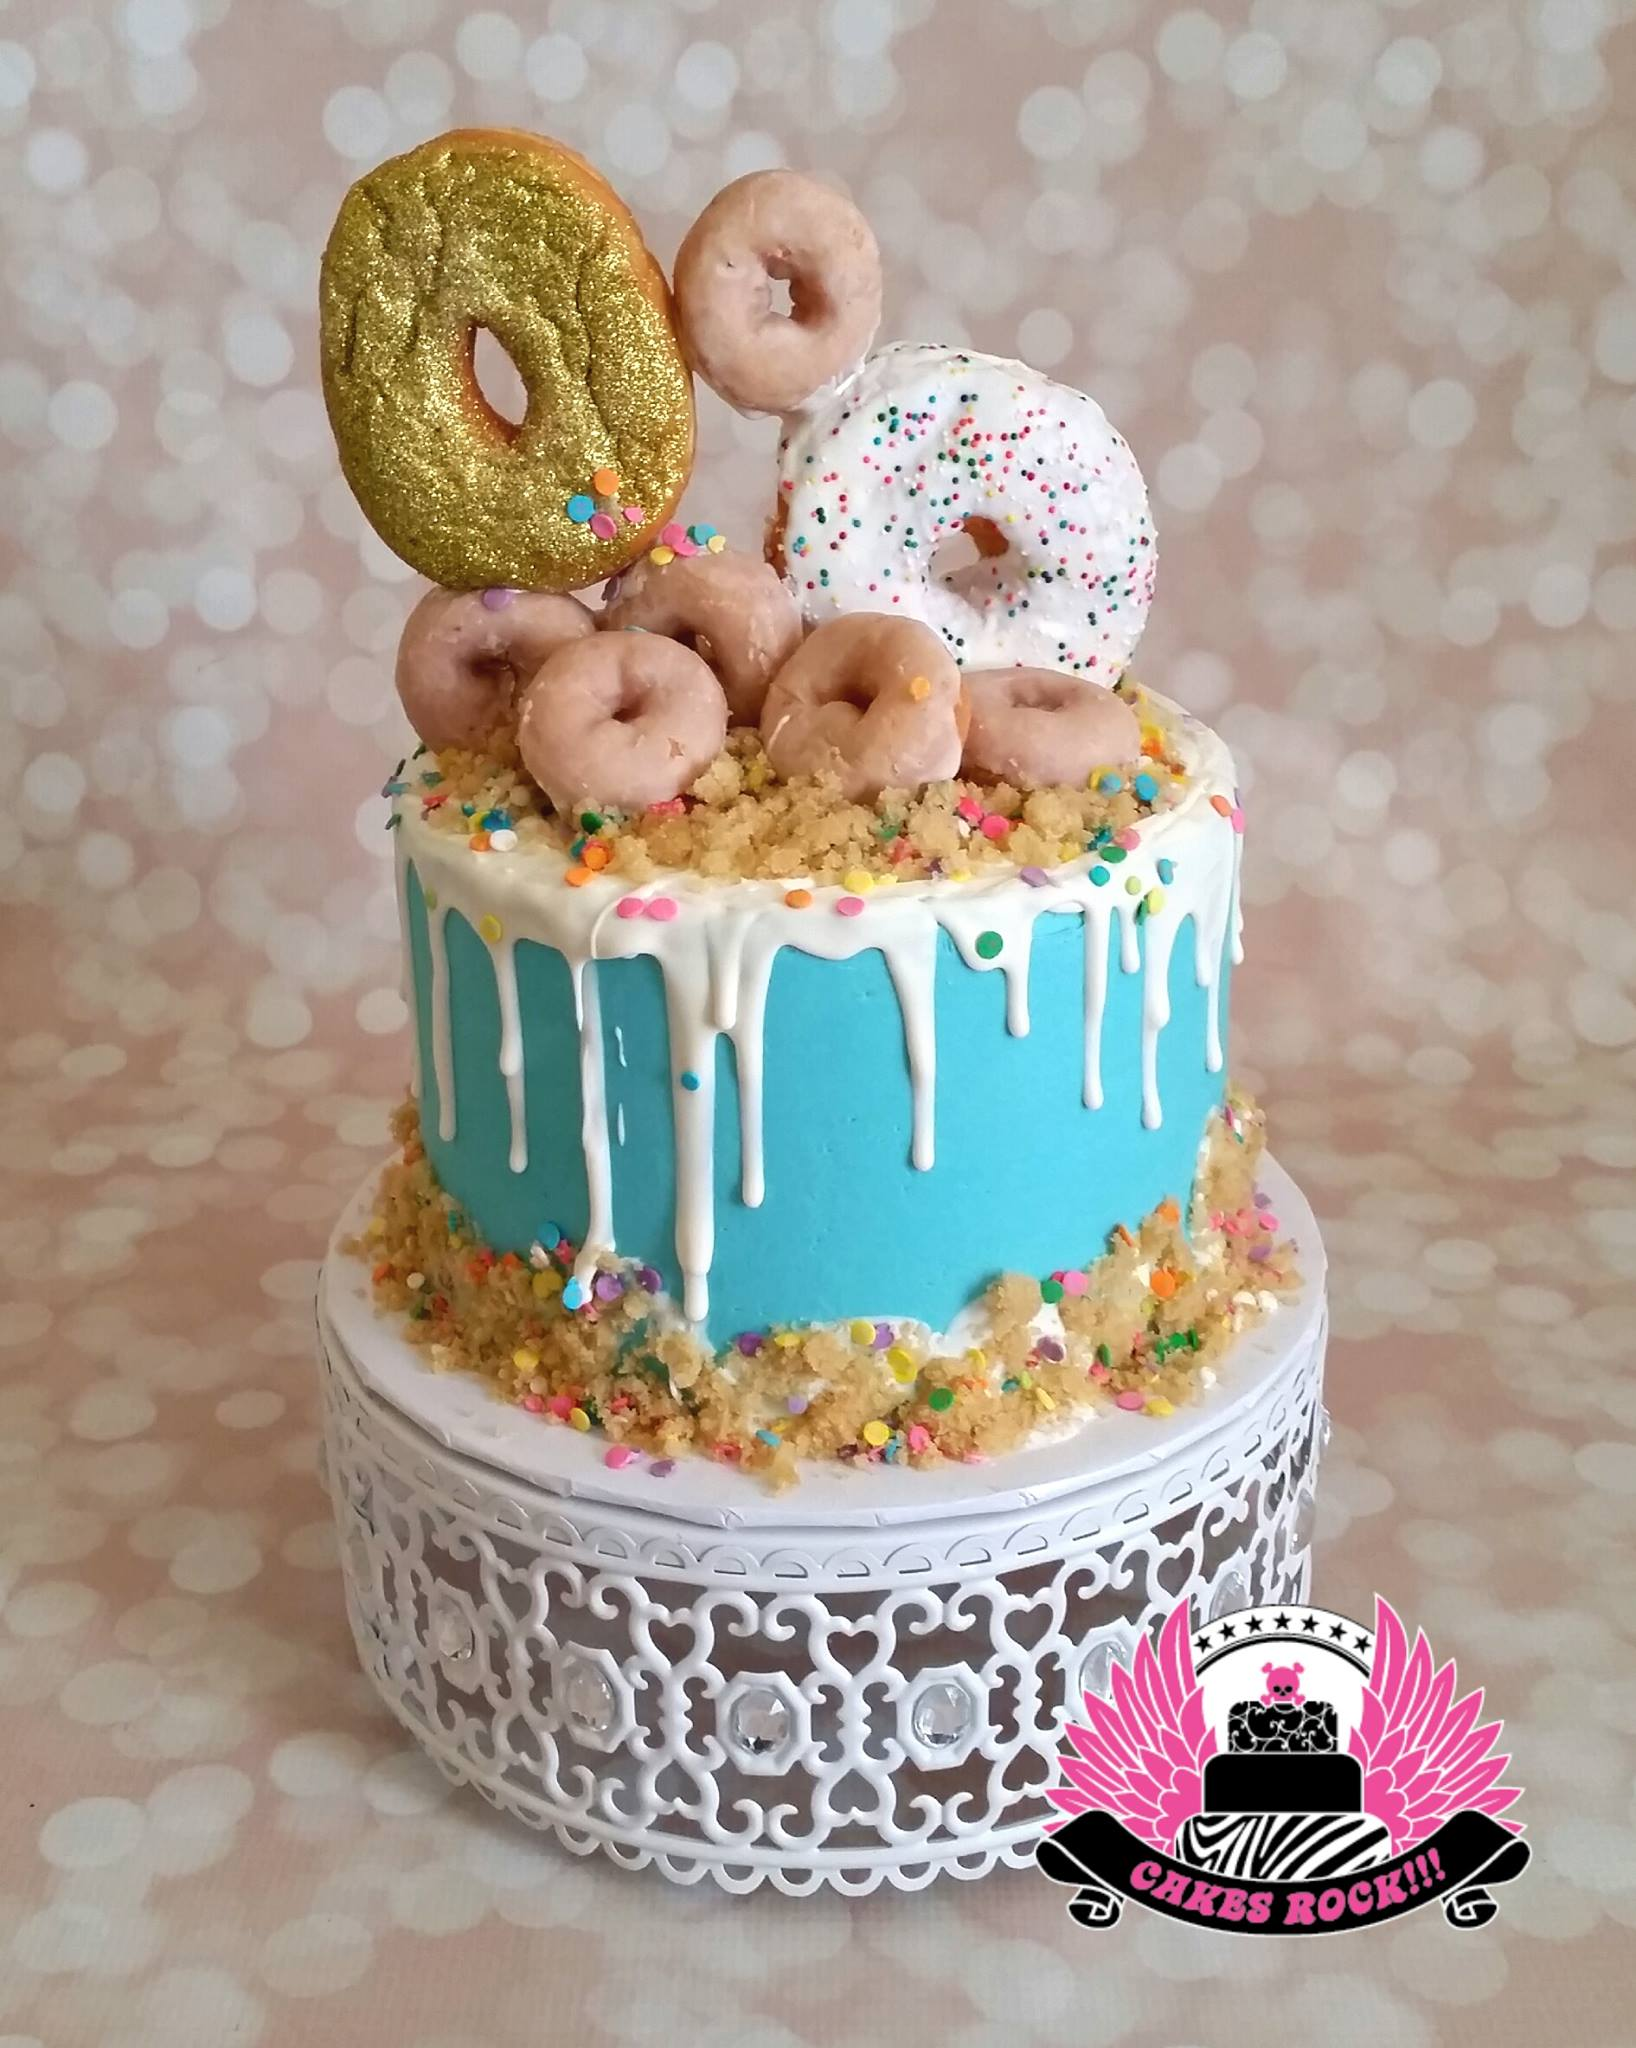 donut topped drip cake white metal cake stand created by Opulent Treasures.jpg